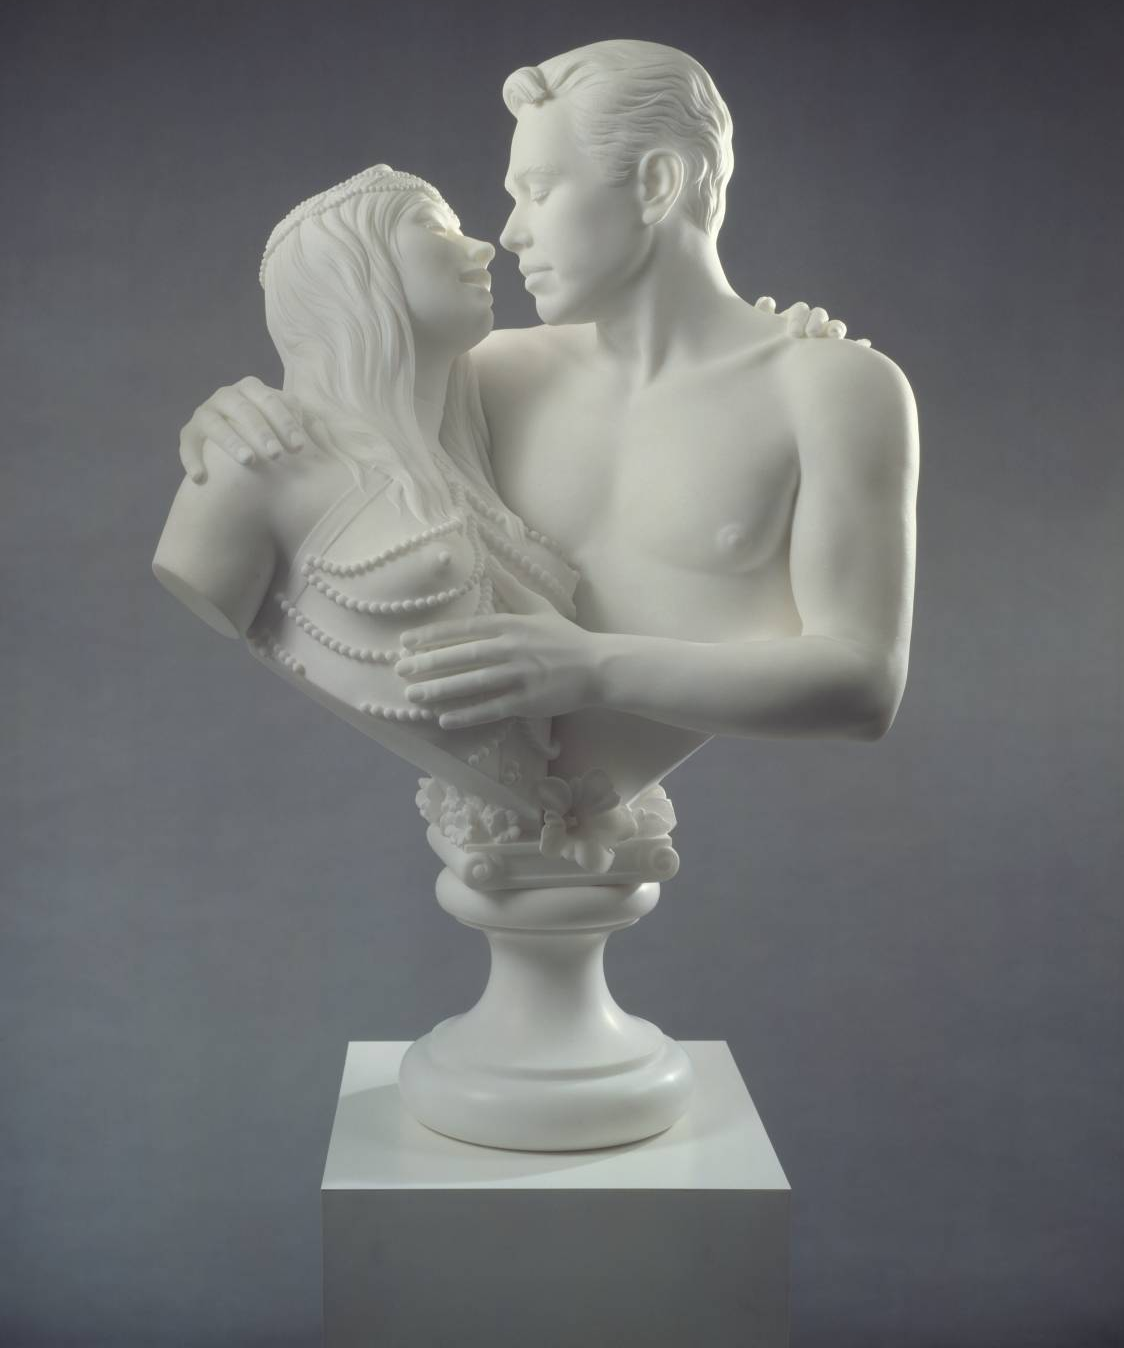 Bourgeois Bust - Jeff and Ilona, 1991 by Jeff Koons